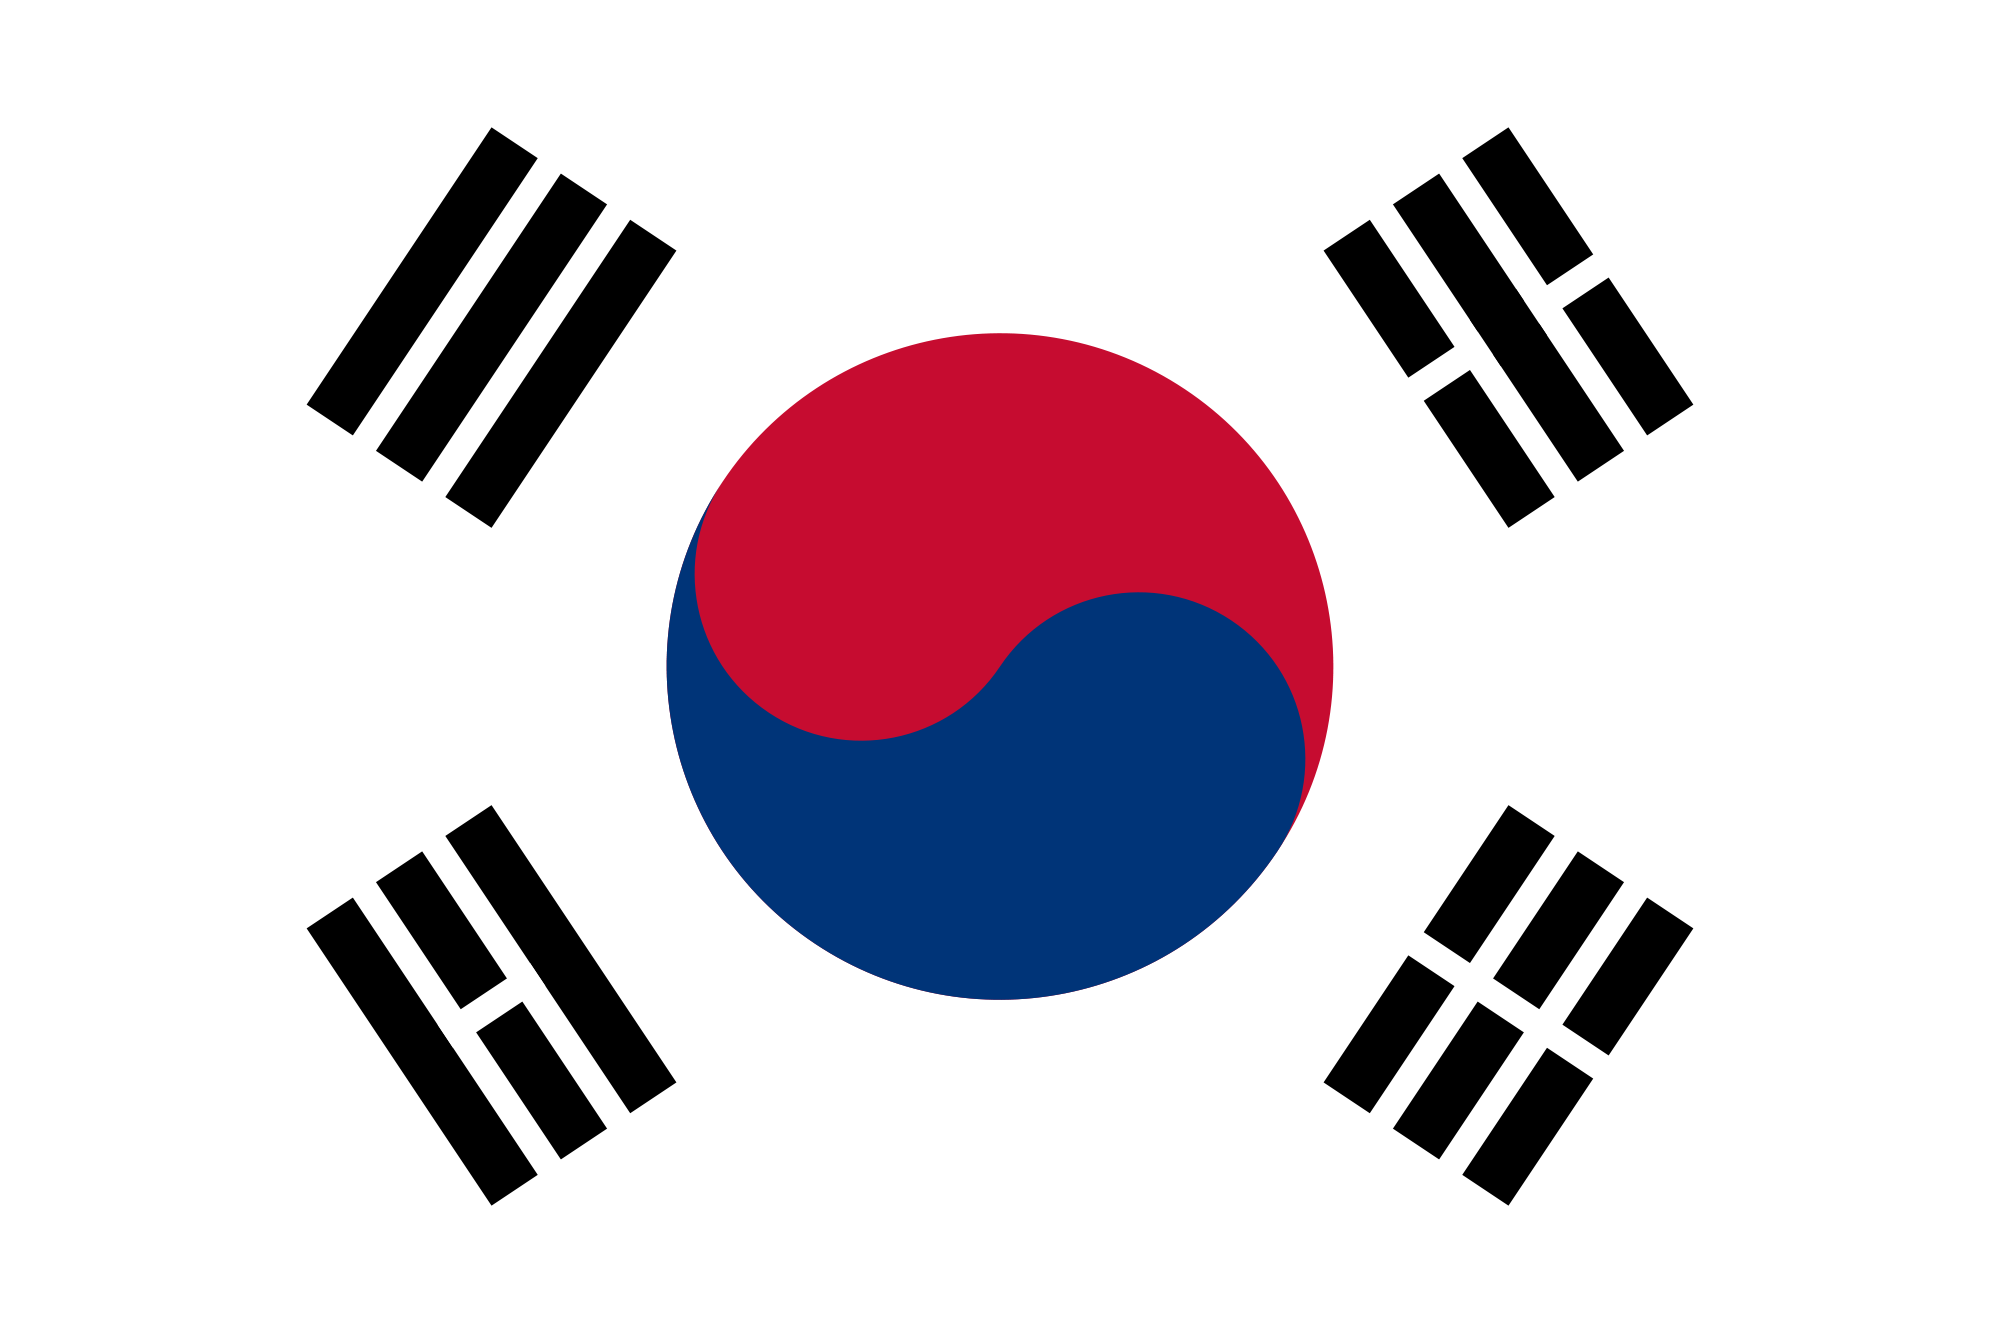 South Korea Country Flag South Korean Flag Korean Flag South Korea Flag